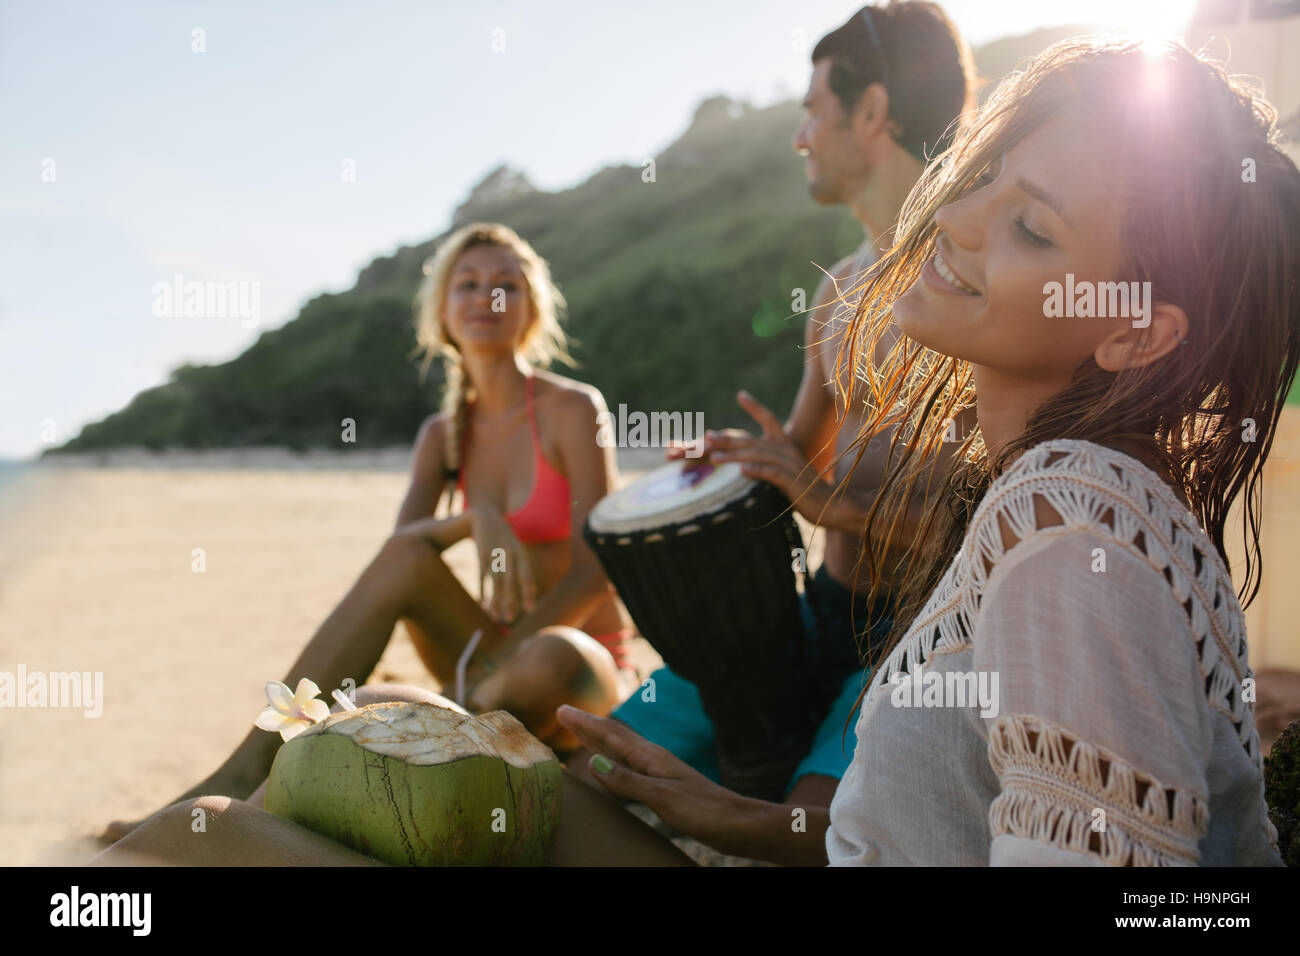 Young woman relaxing on the sea shore with her friends in background. Friends partying and having fun on the beach. - Stock Image